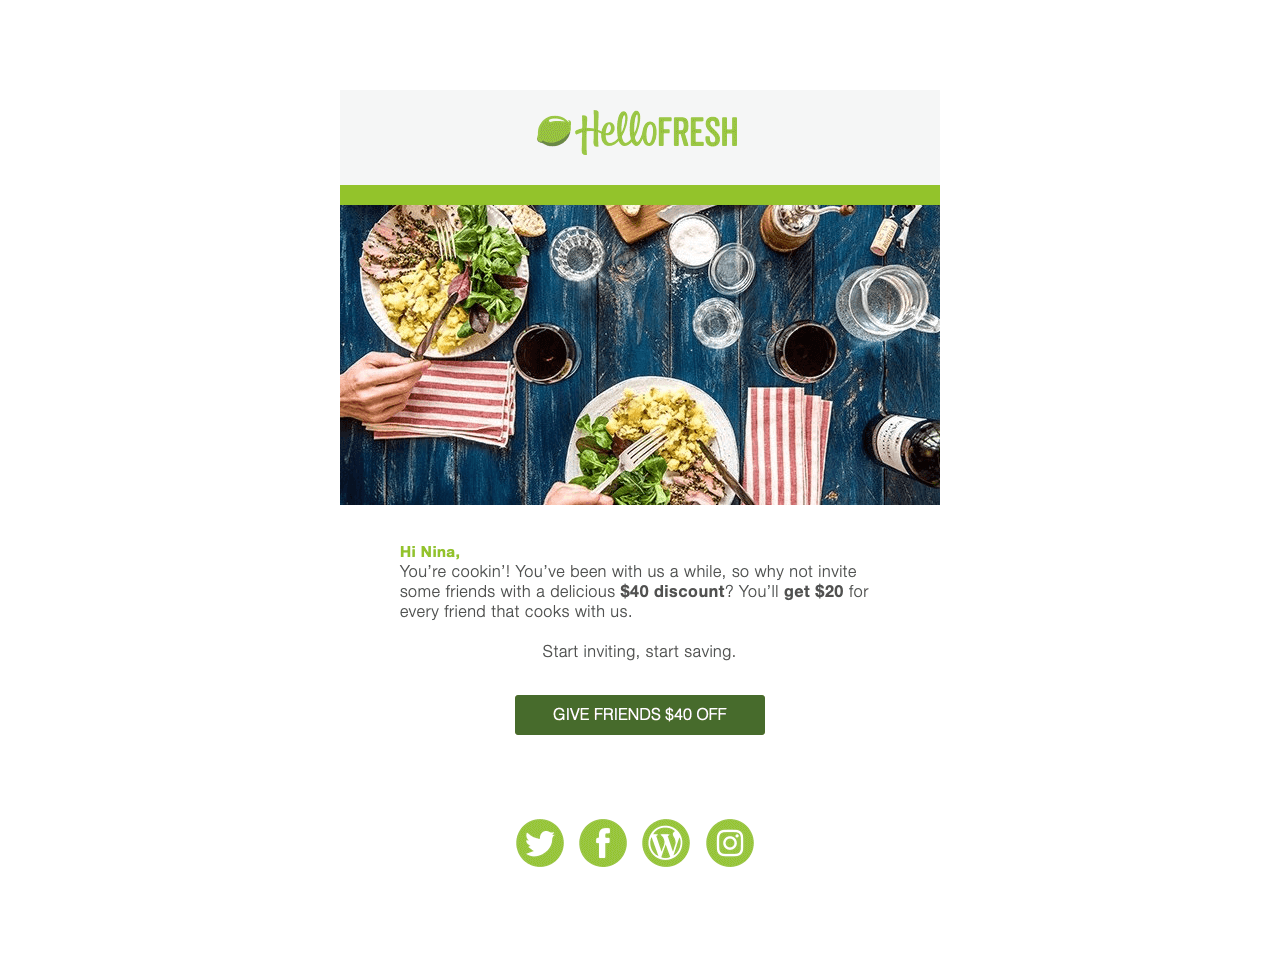 HelloFresh offers a $40 referral coupon to their repeat customers